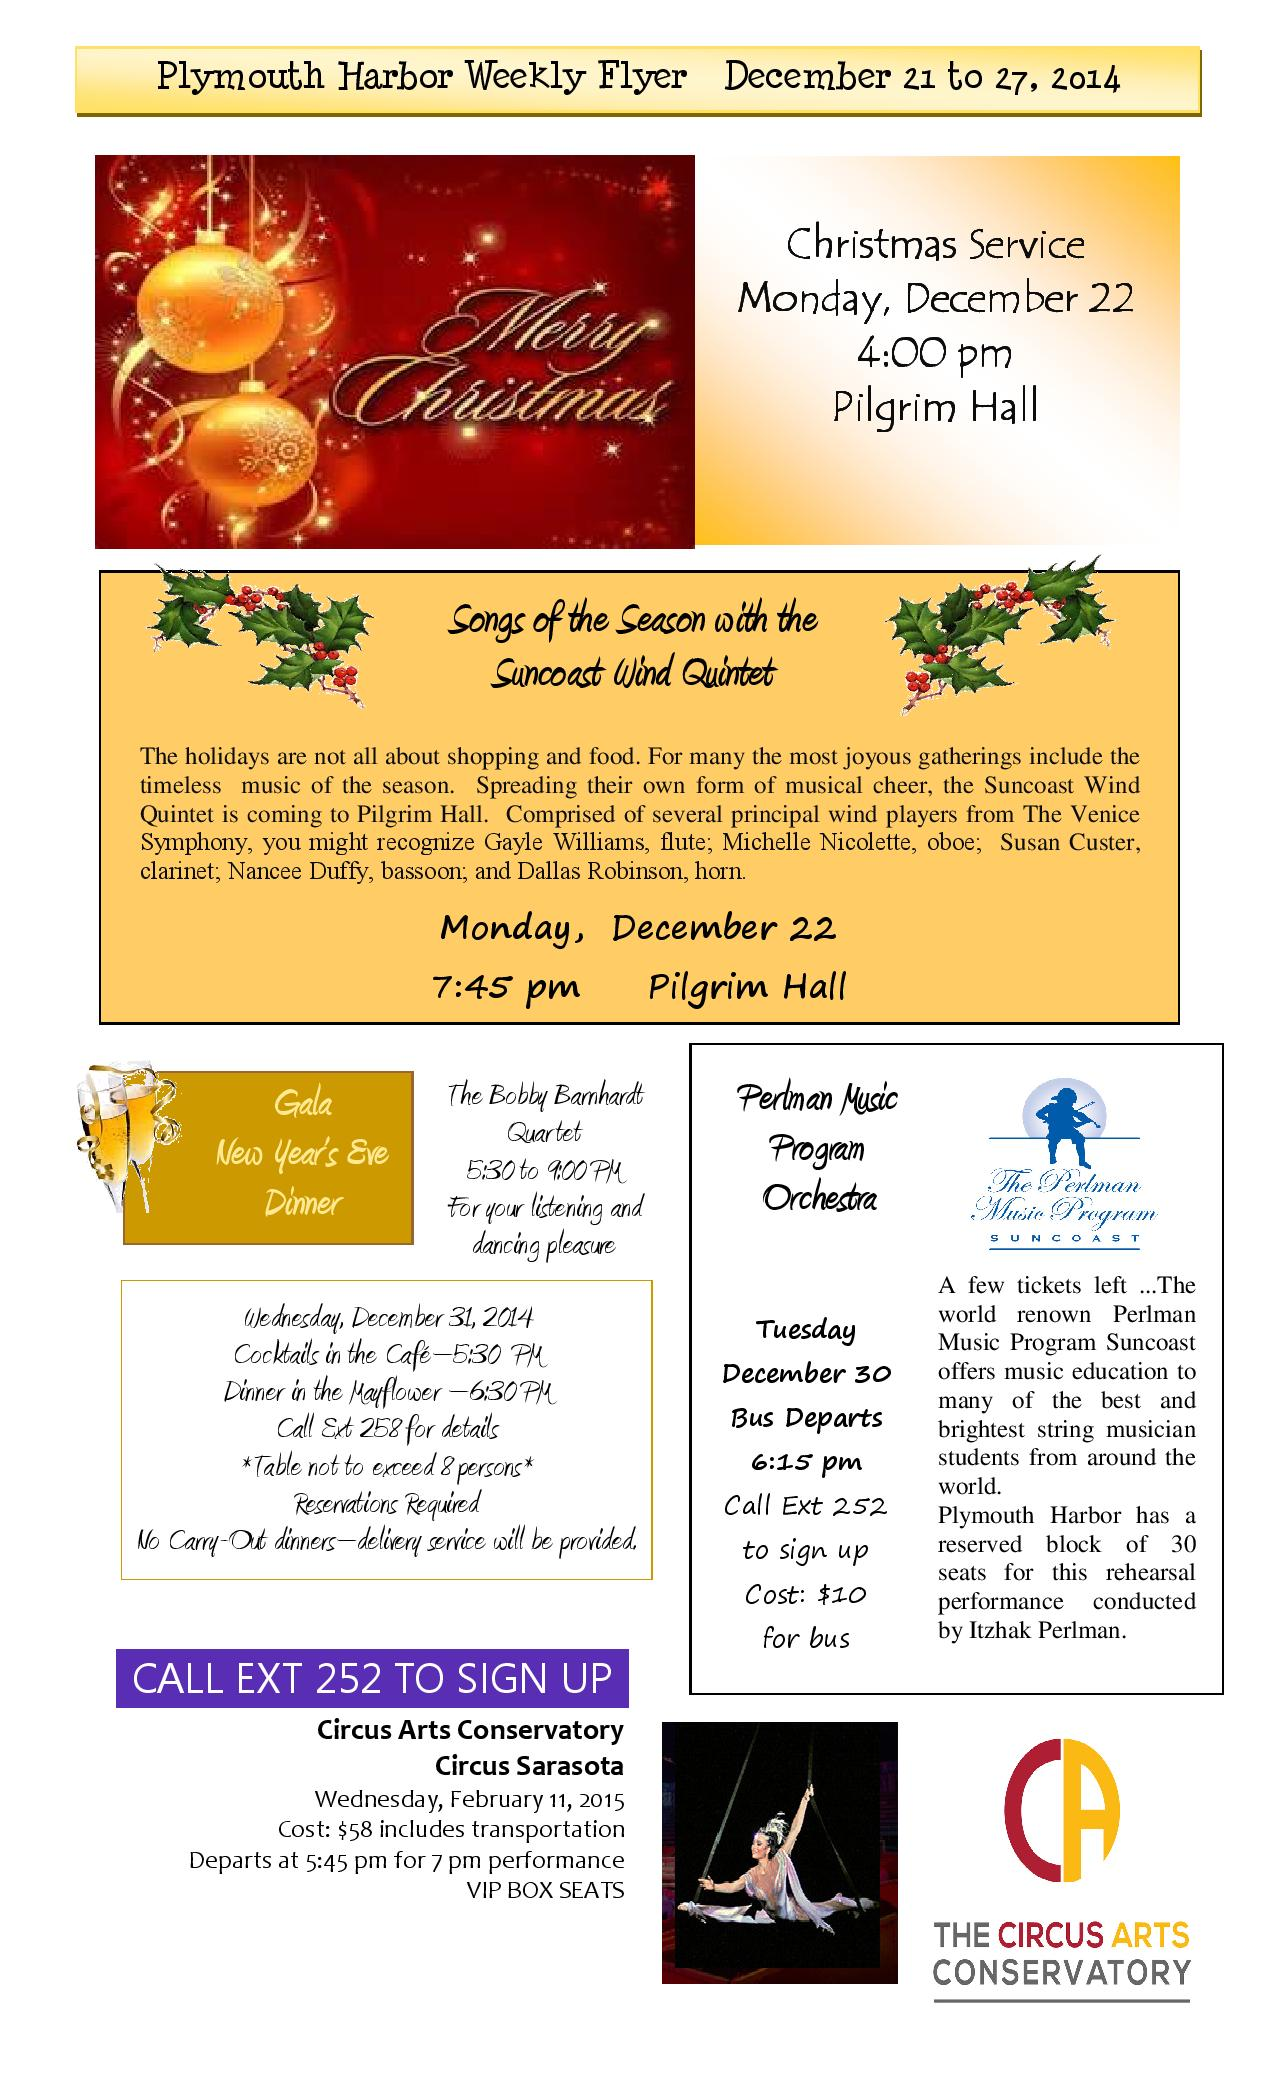 Plymouth Harbor Events And Activities December 21 27 2014